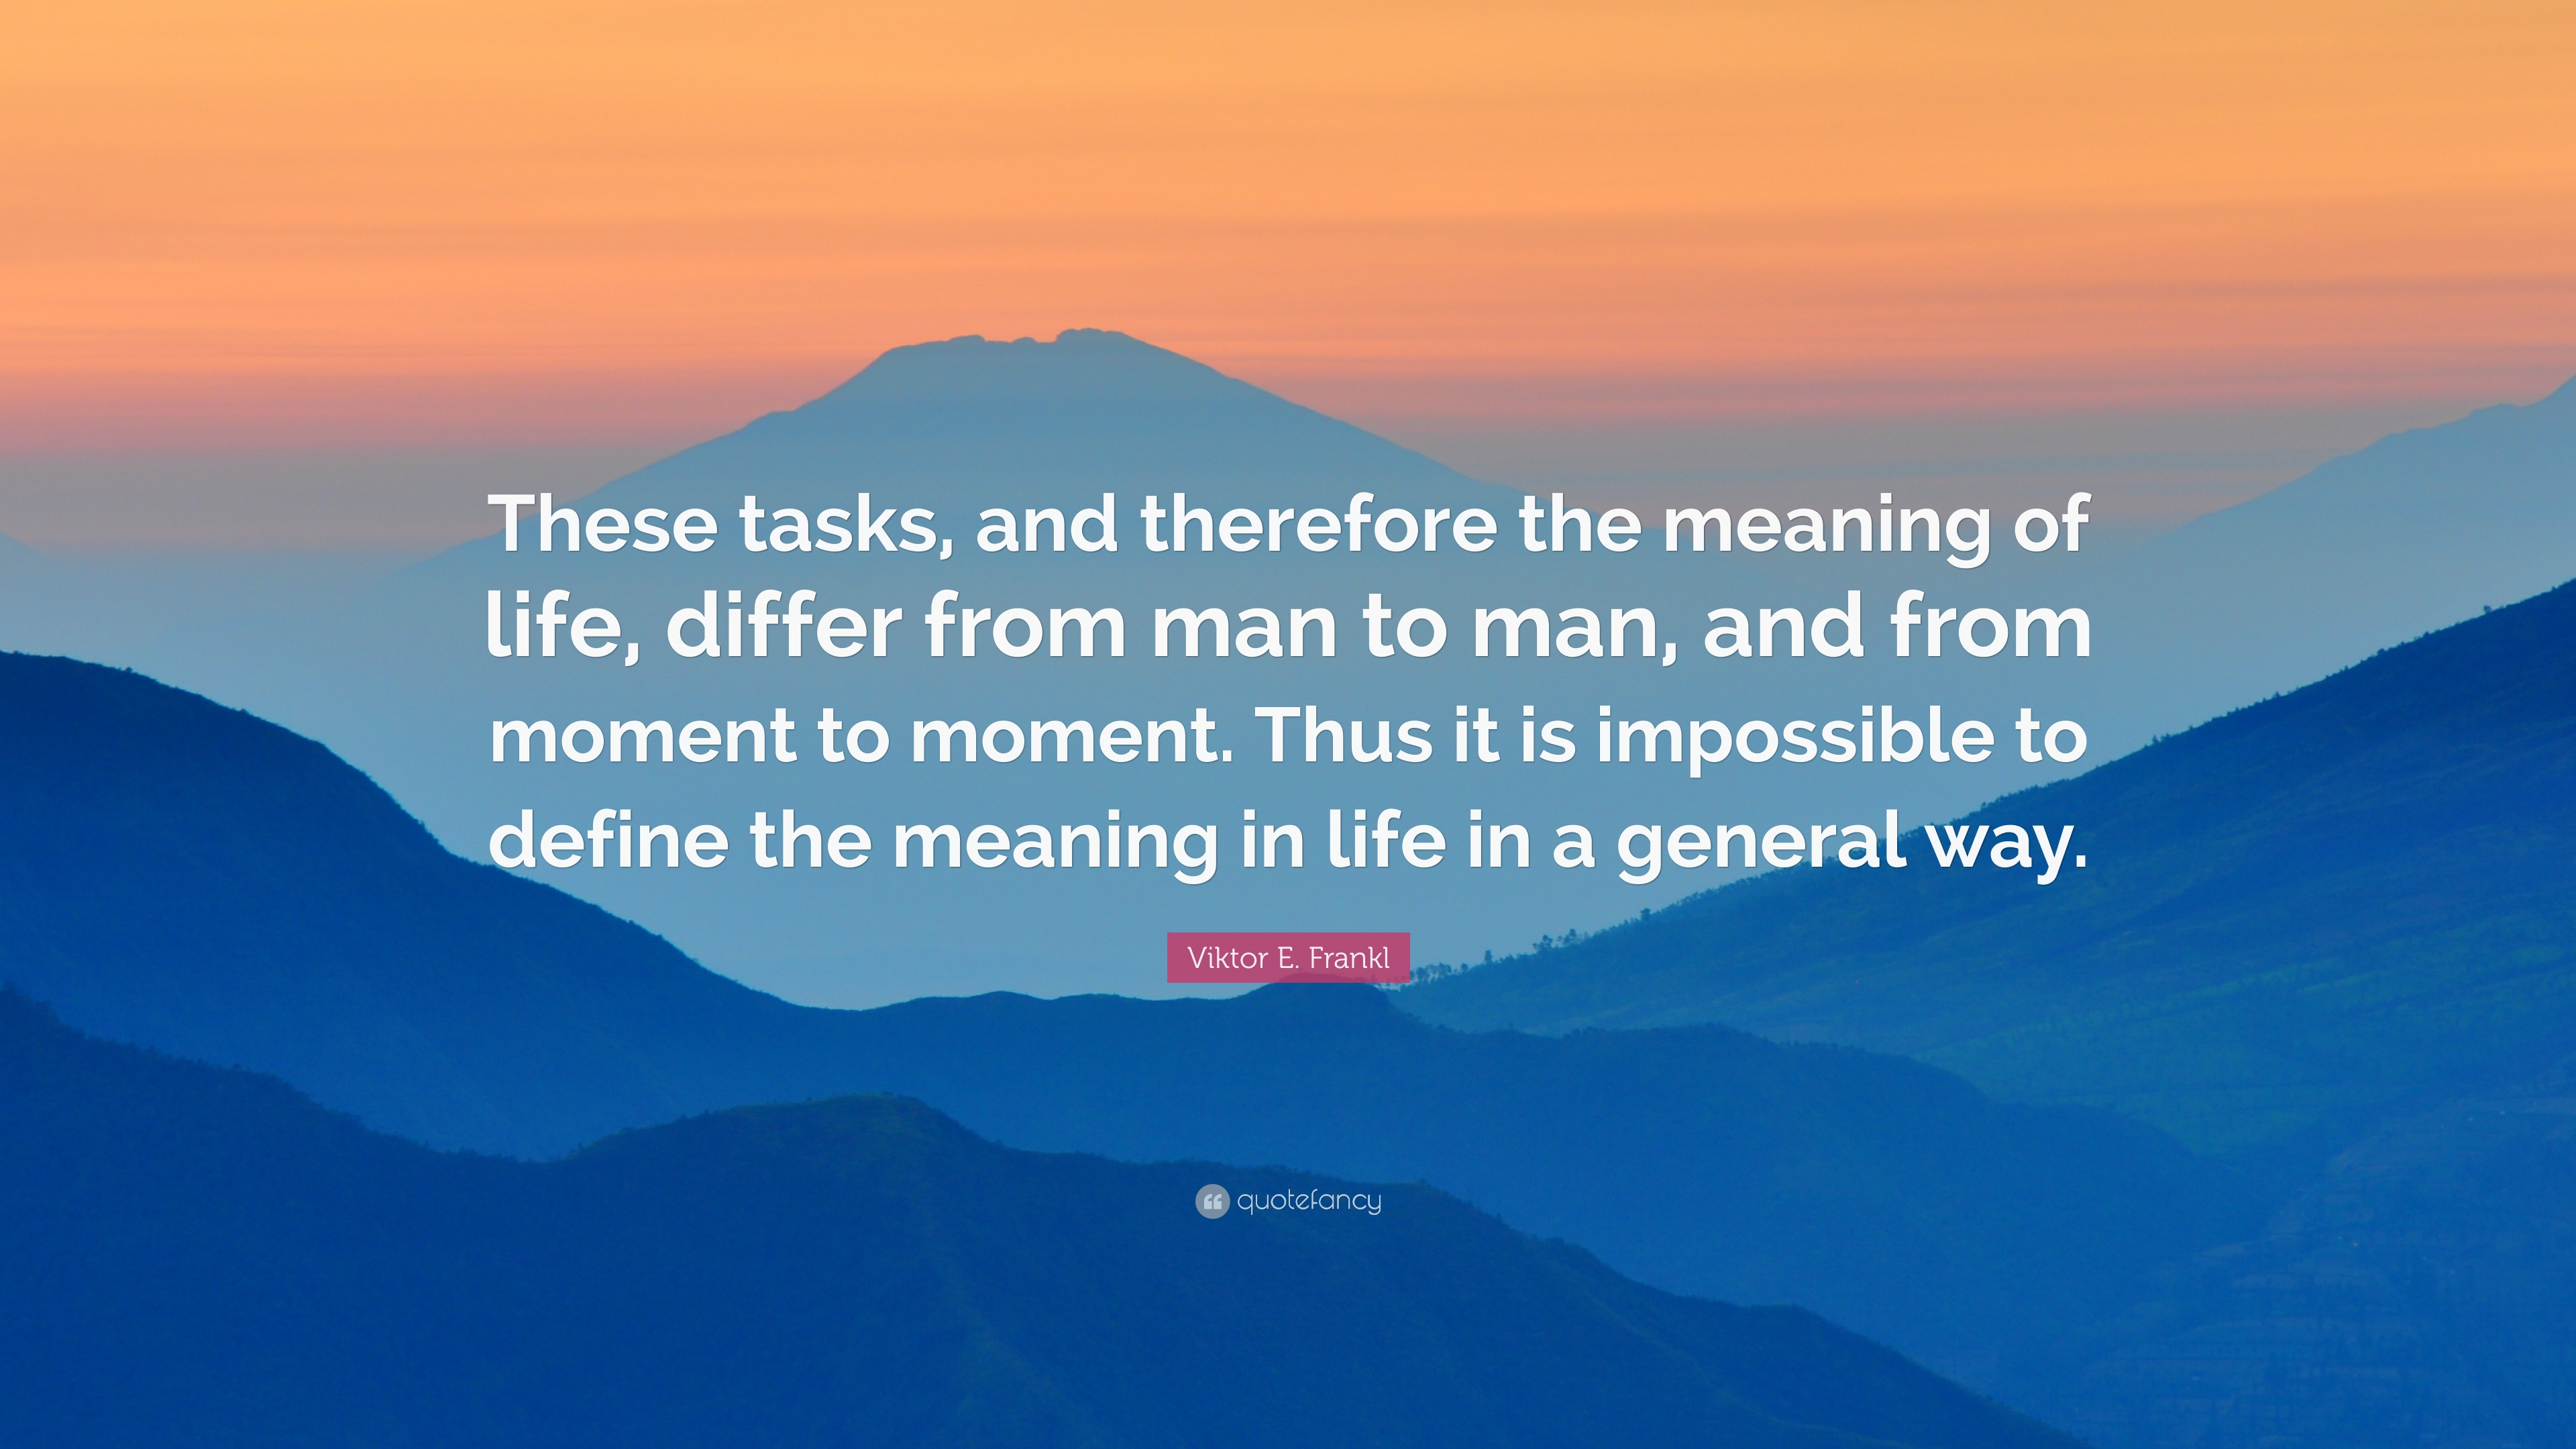 Meaning Of Life Quotes: U201cThese Tasks, And Therefore The Meaning Of Life,